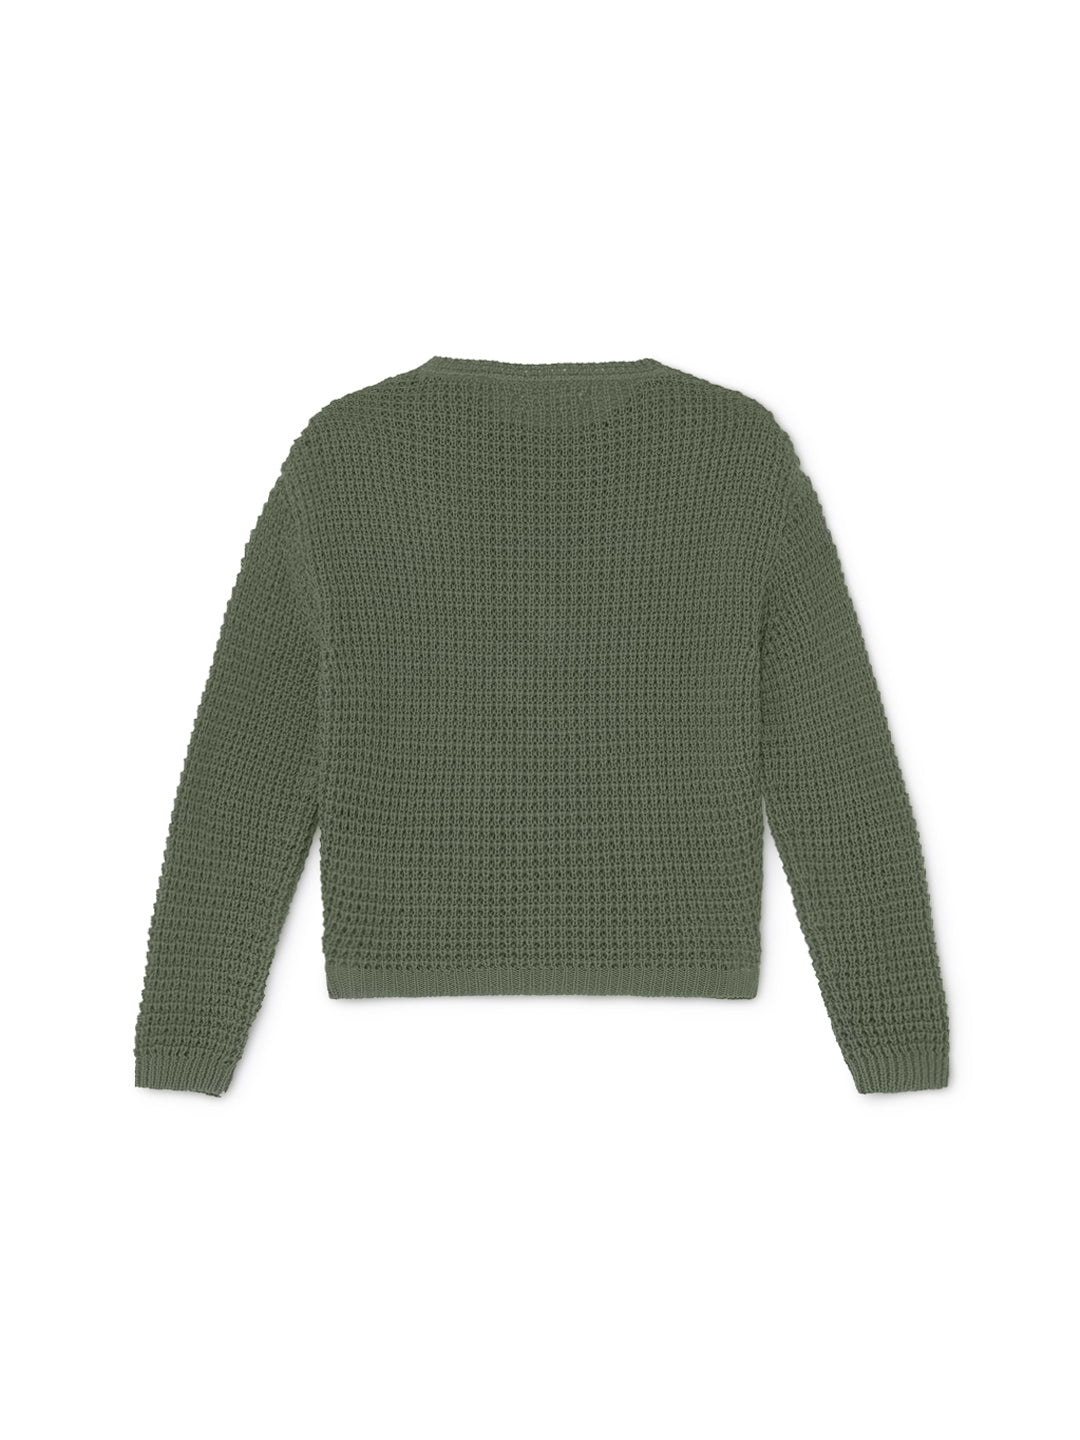 TWOTHIRDS Womens Knit: Teresa - Dusty Green back